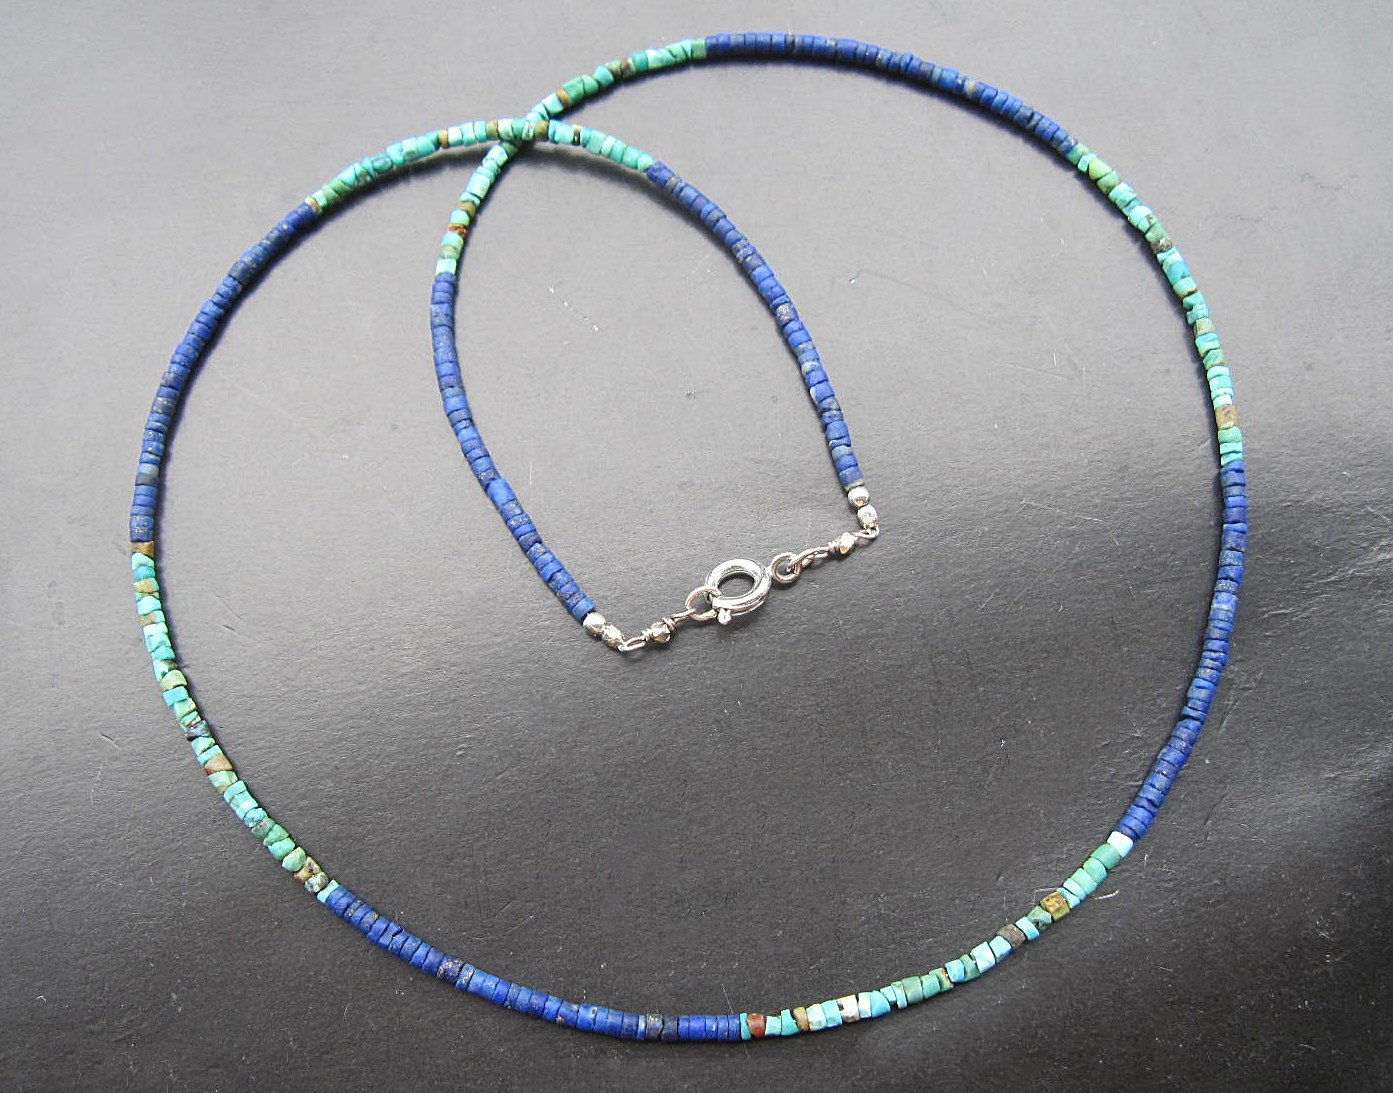 Afghan Turquoise seed beads Necklace Afghan Lapis lazuli seed beads Necklace 925 Sterling silver Clasp,Custom size 15,16,17,18,20,22,24